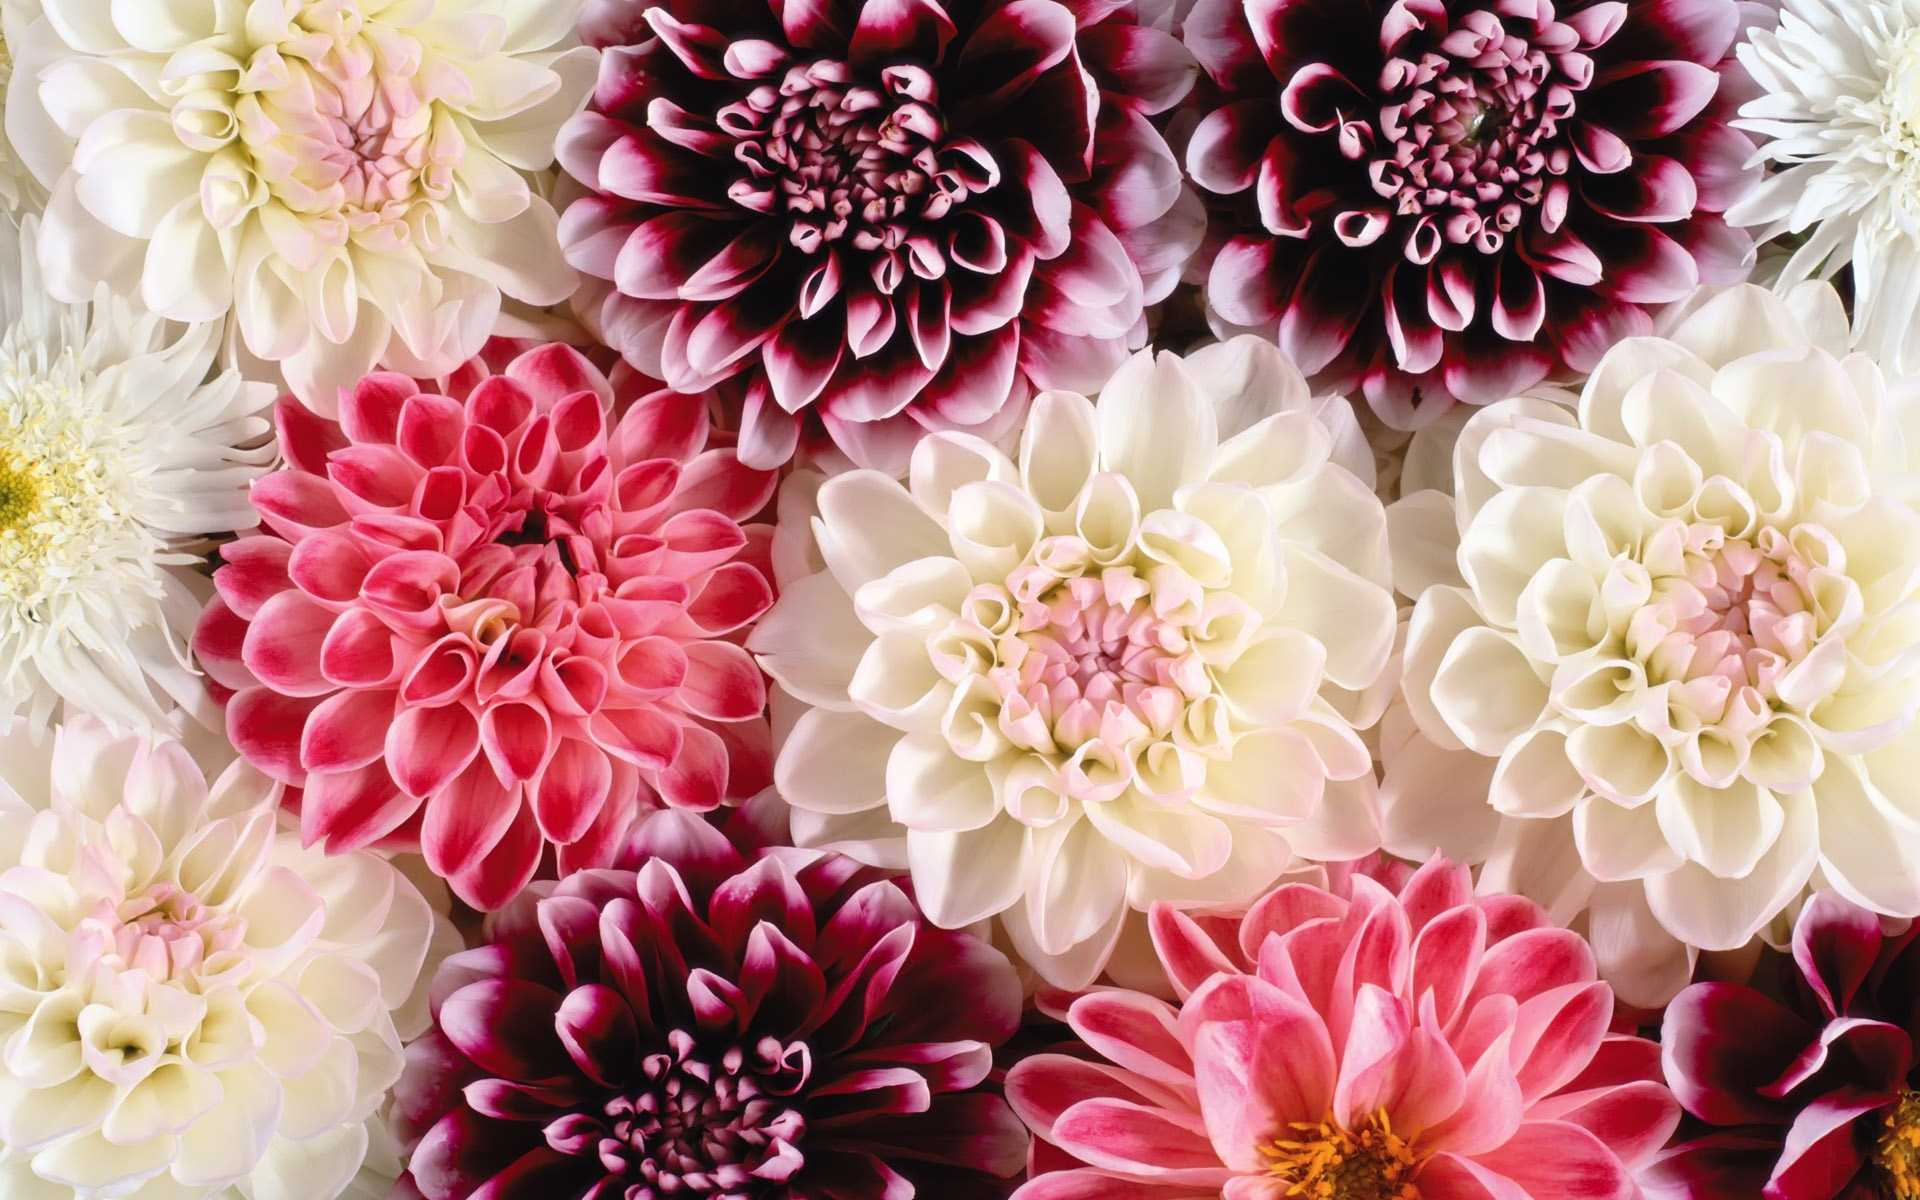 Flower Backgrounds Free